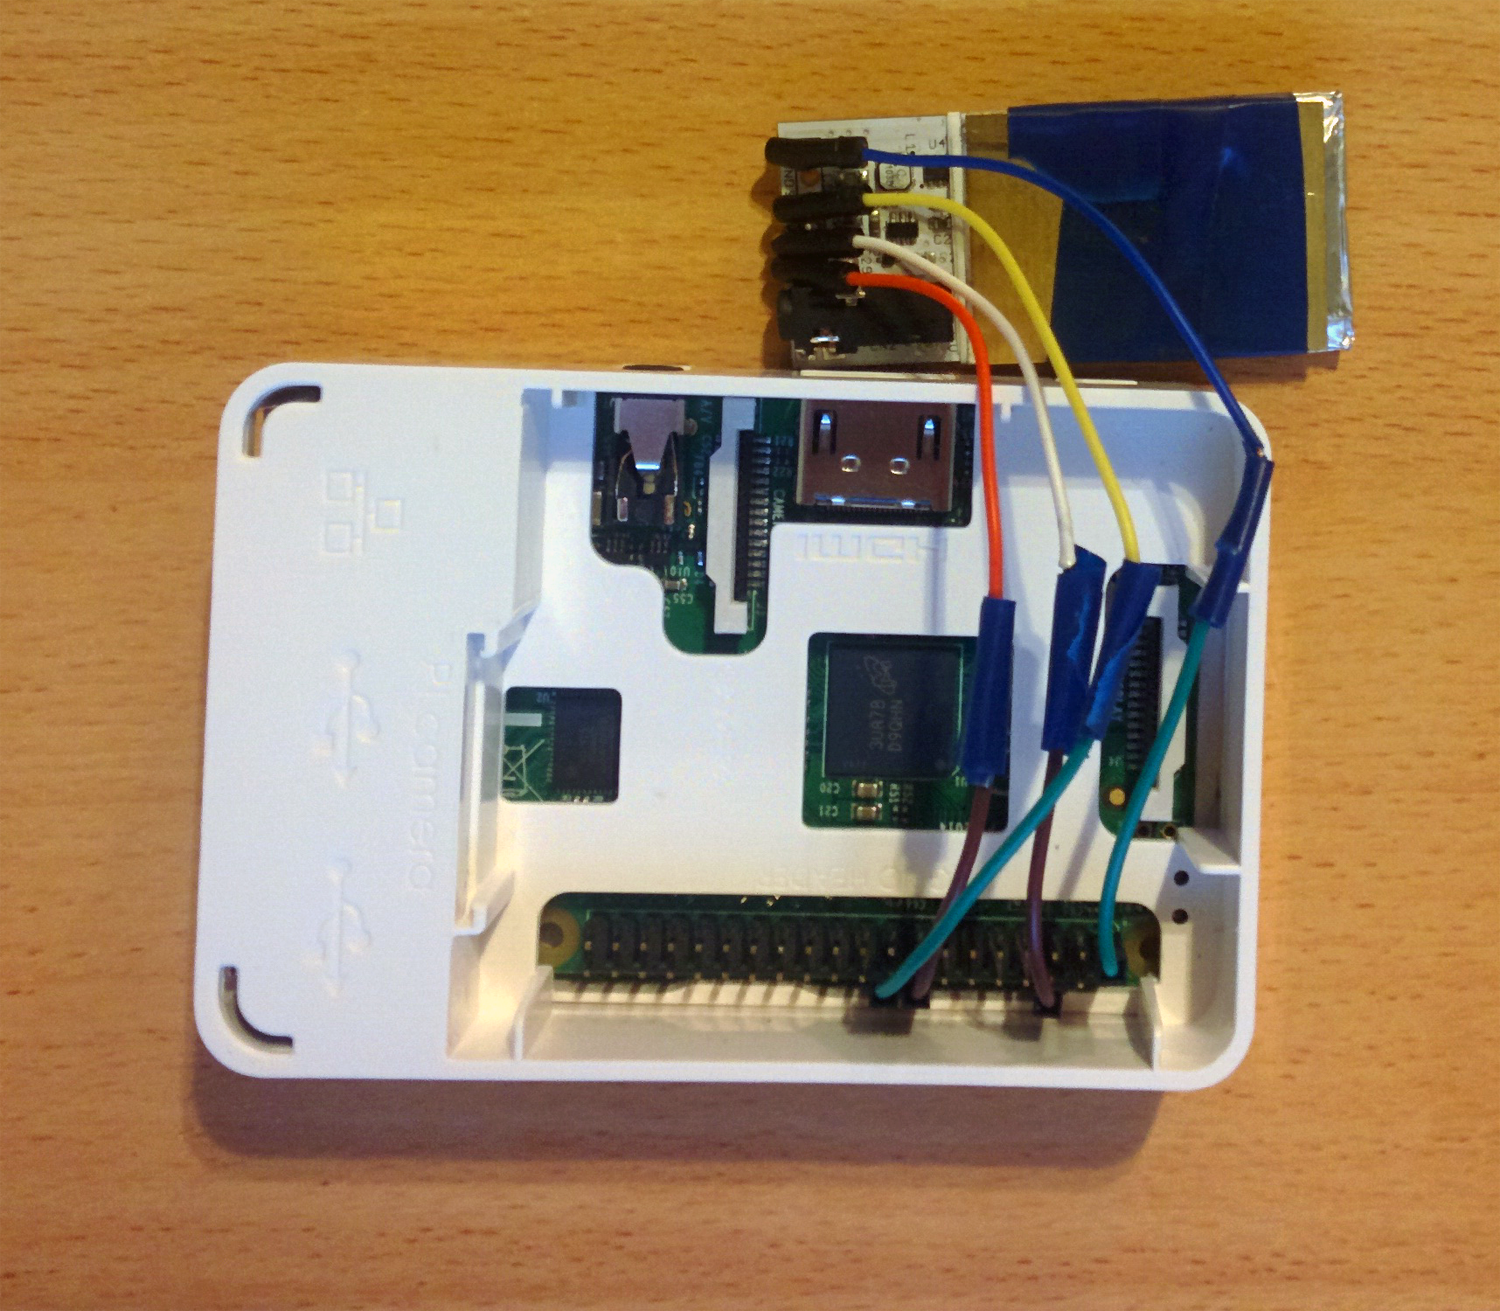 Wiring of Pocket Geiger and Raspberry Pi